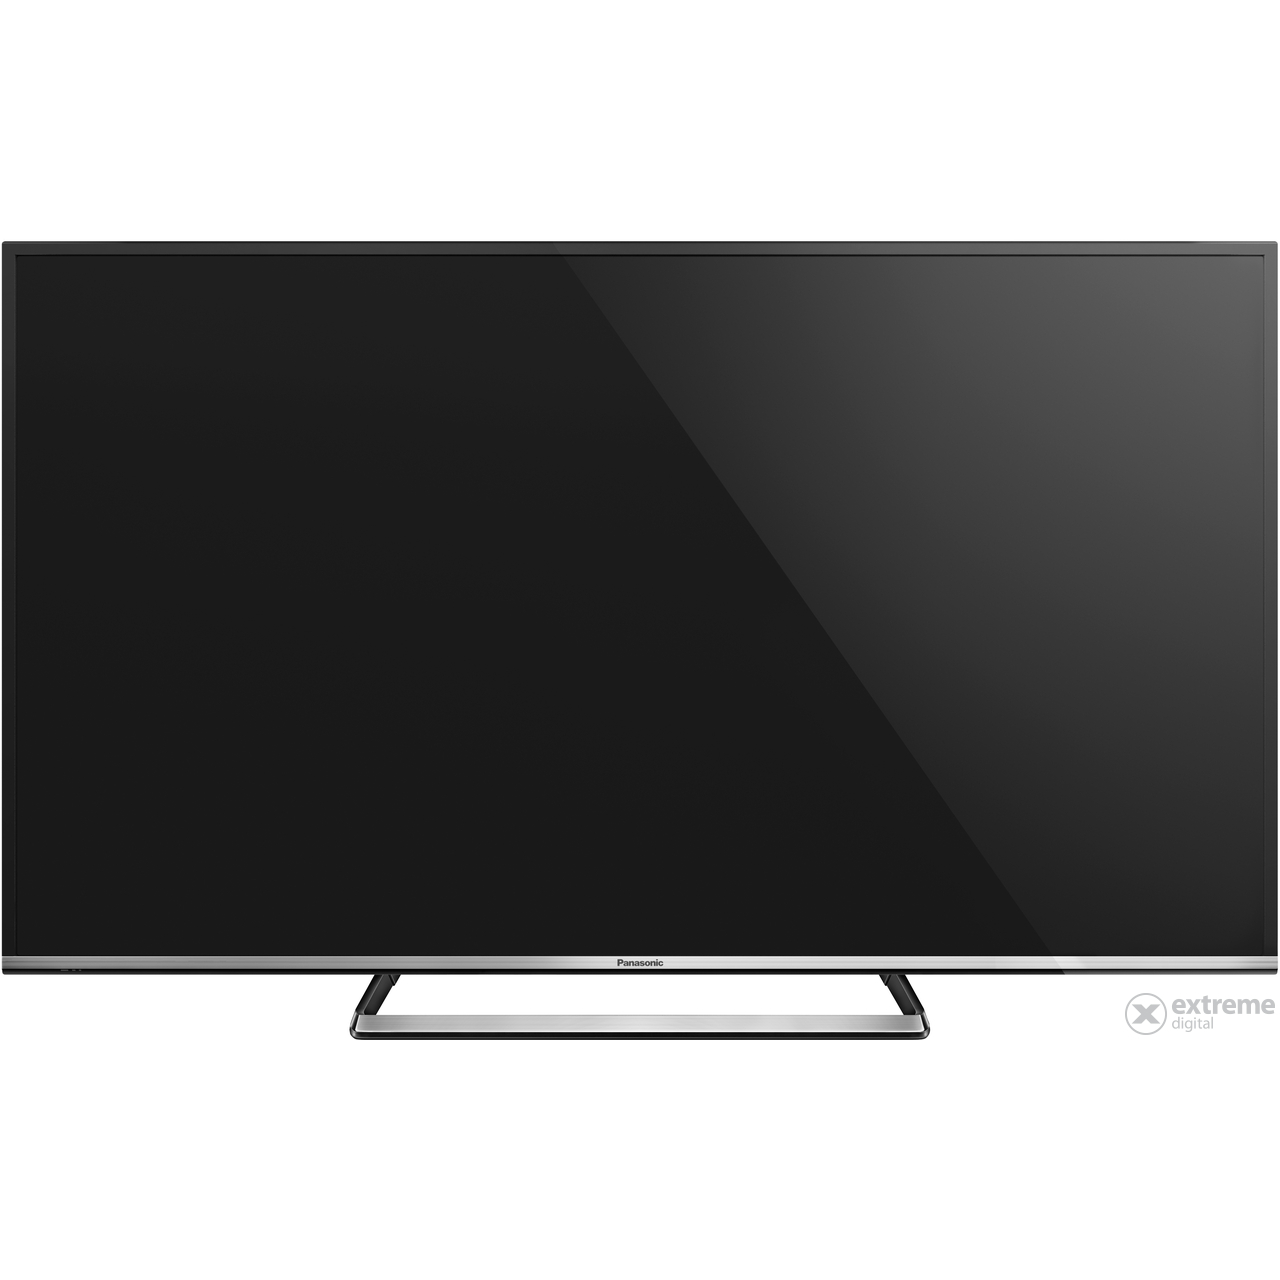 panasonic-tx-32cs510e-smart-led-televizio_c27febc8.jpg